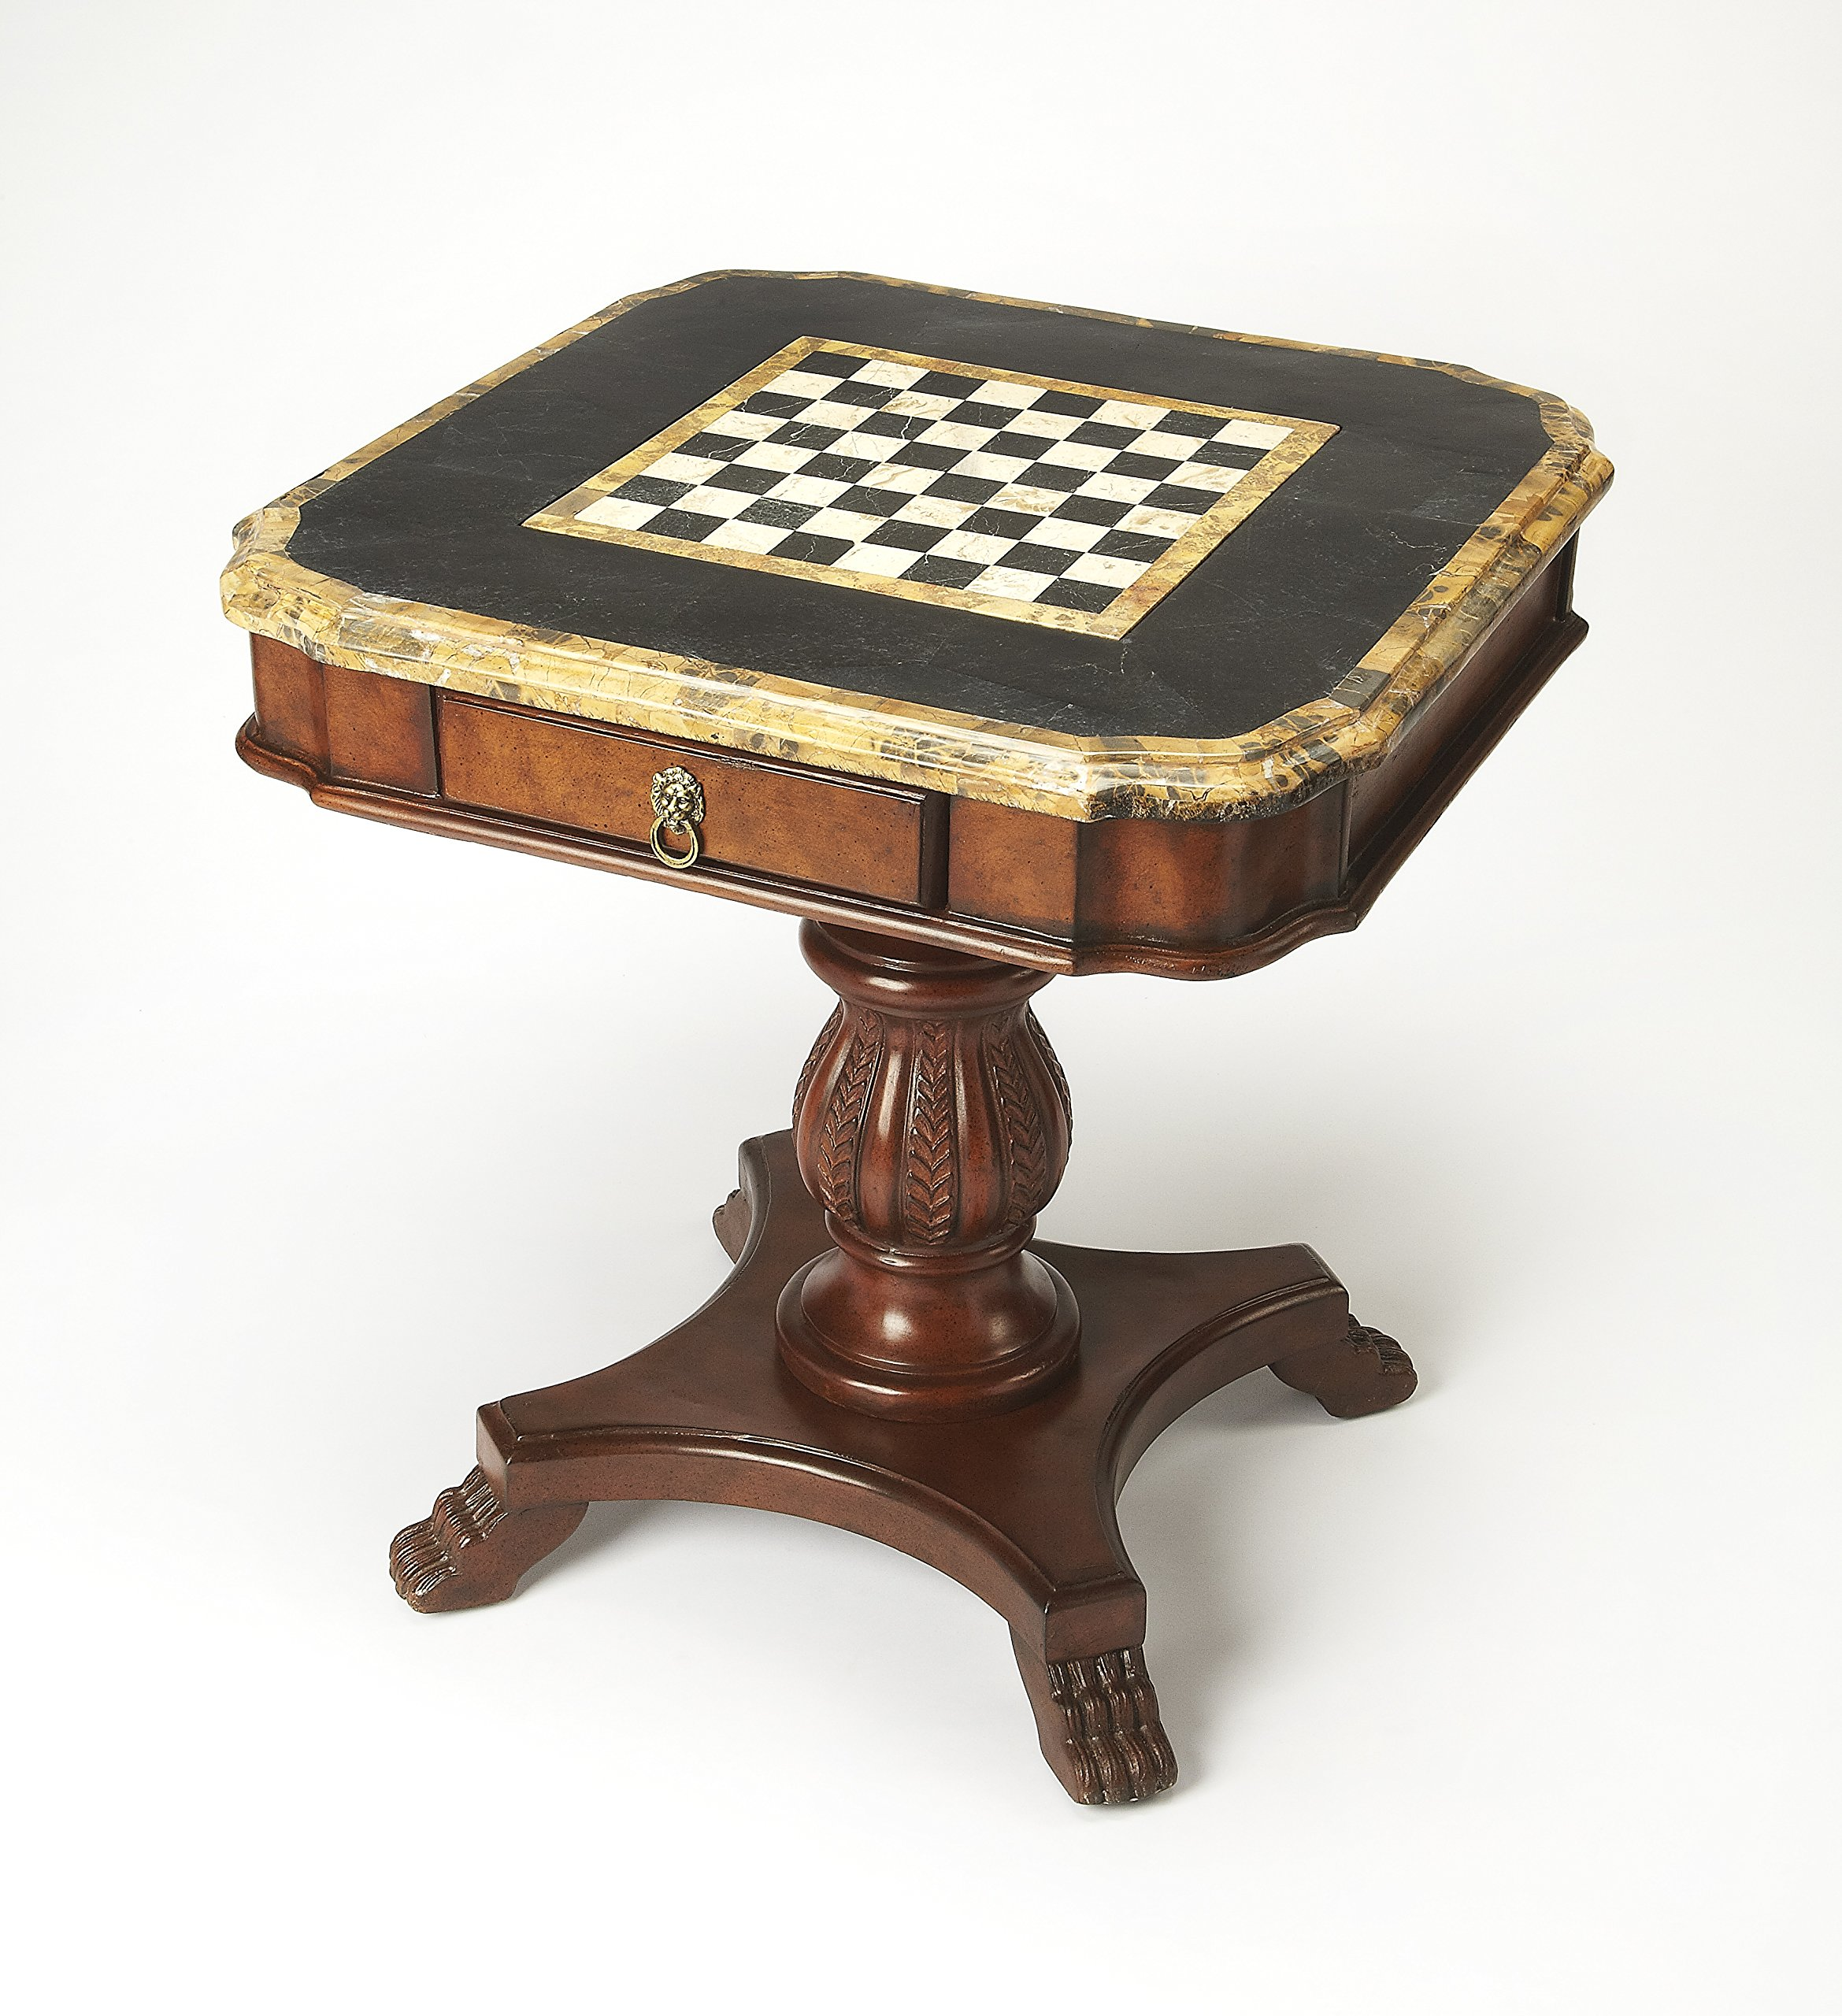 BUTLER CARLYLE FOSSIL STONE GAME TABLE by Butler specality company